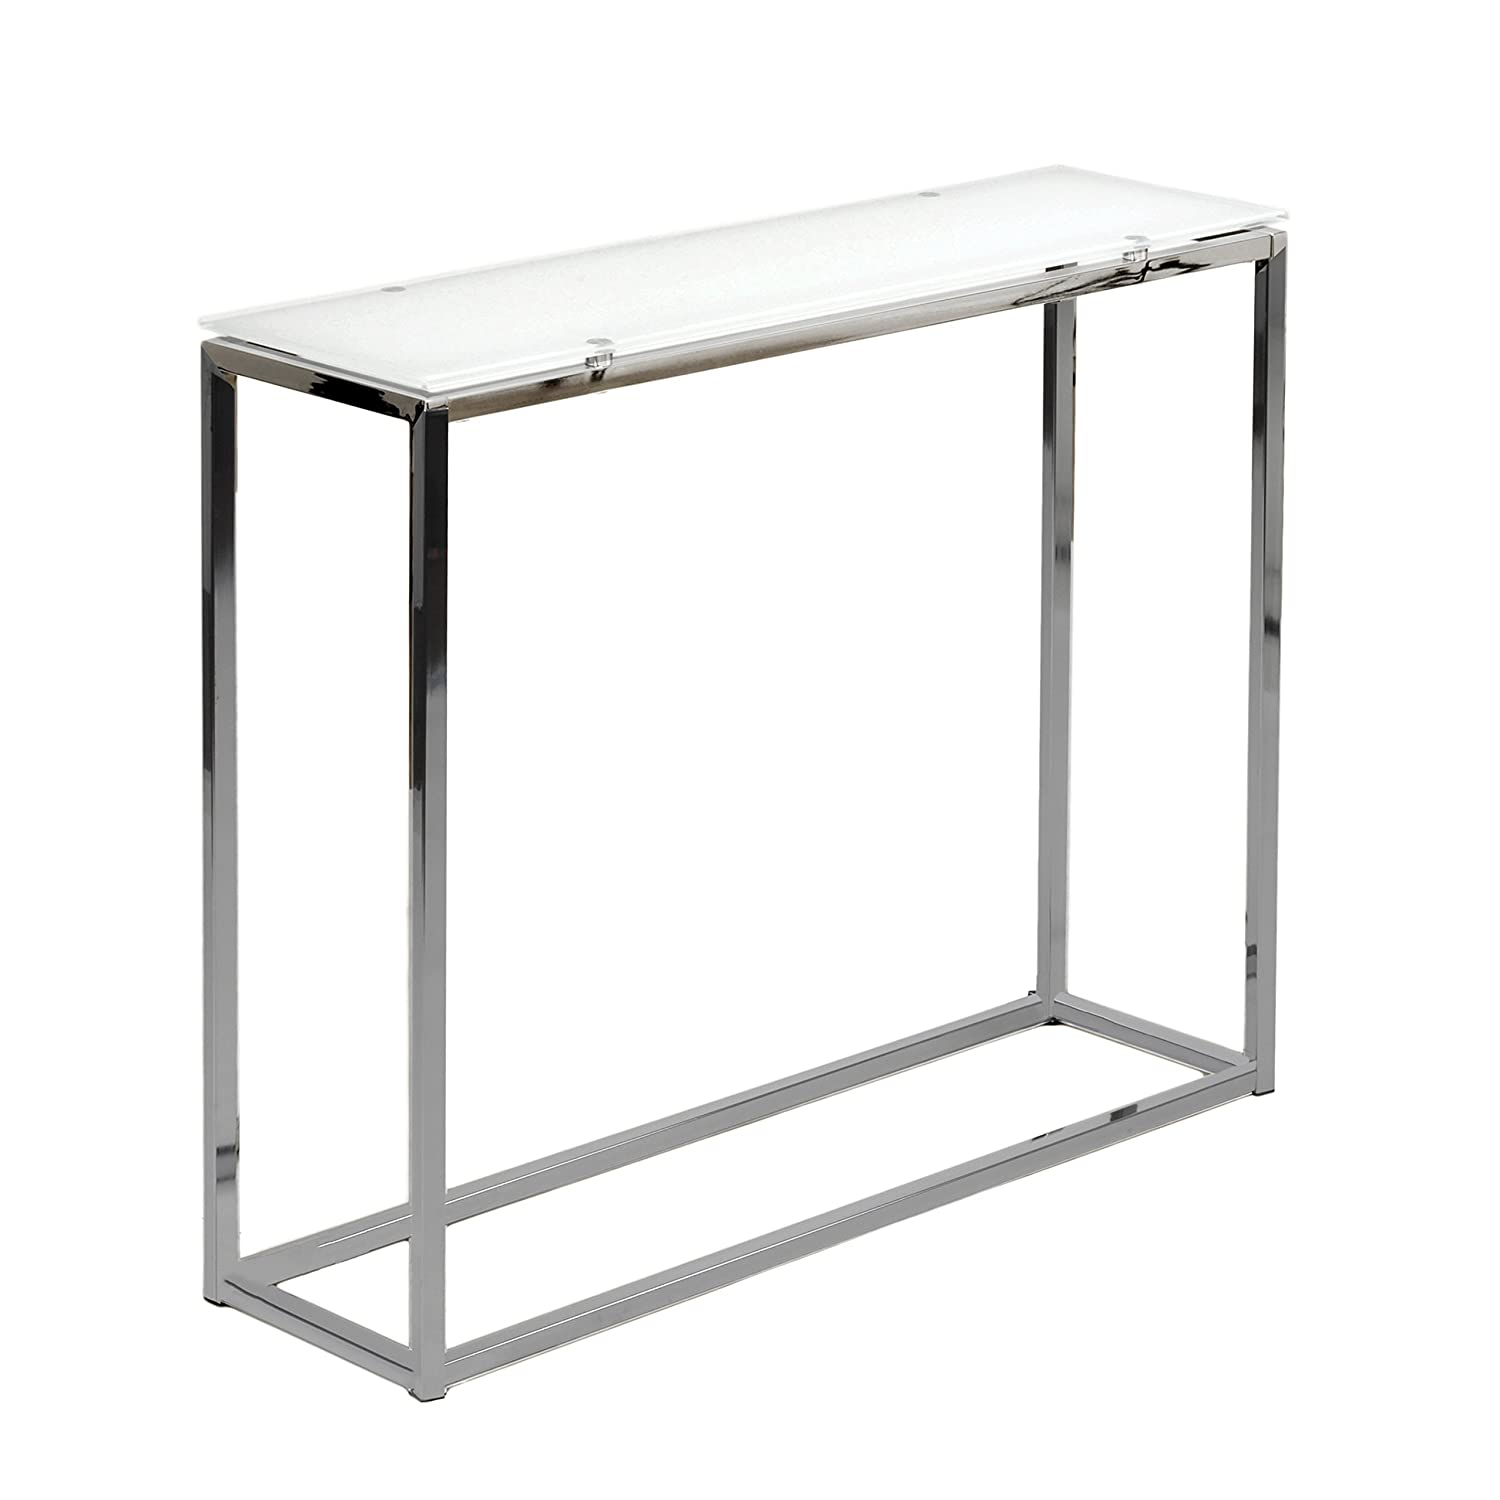 Euro Style Sandor Clear Glass Top Console Table, Chromed Steel Base Euro Style - DROPSHIP 28033